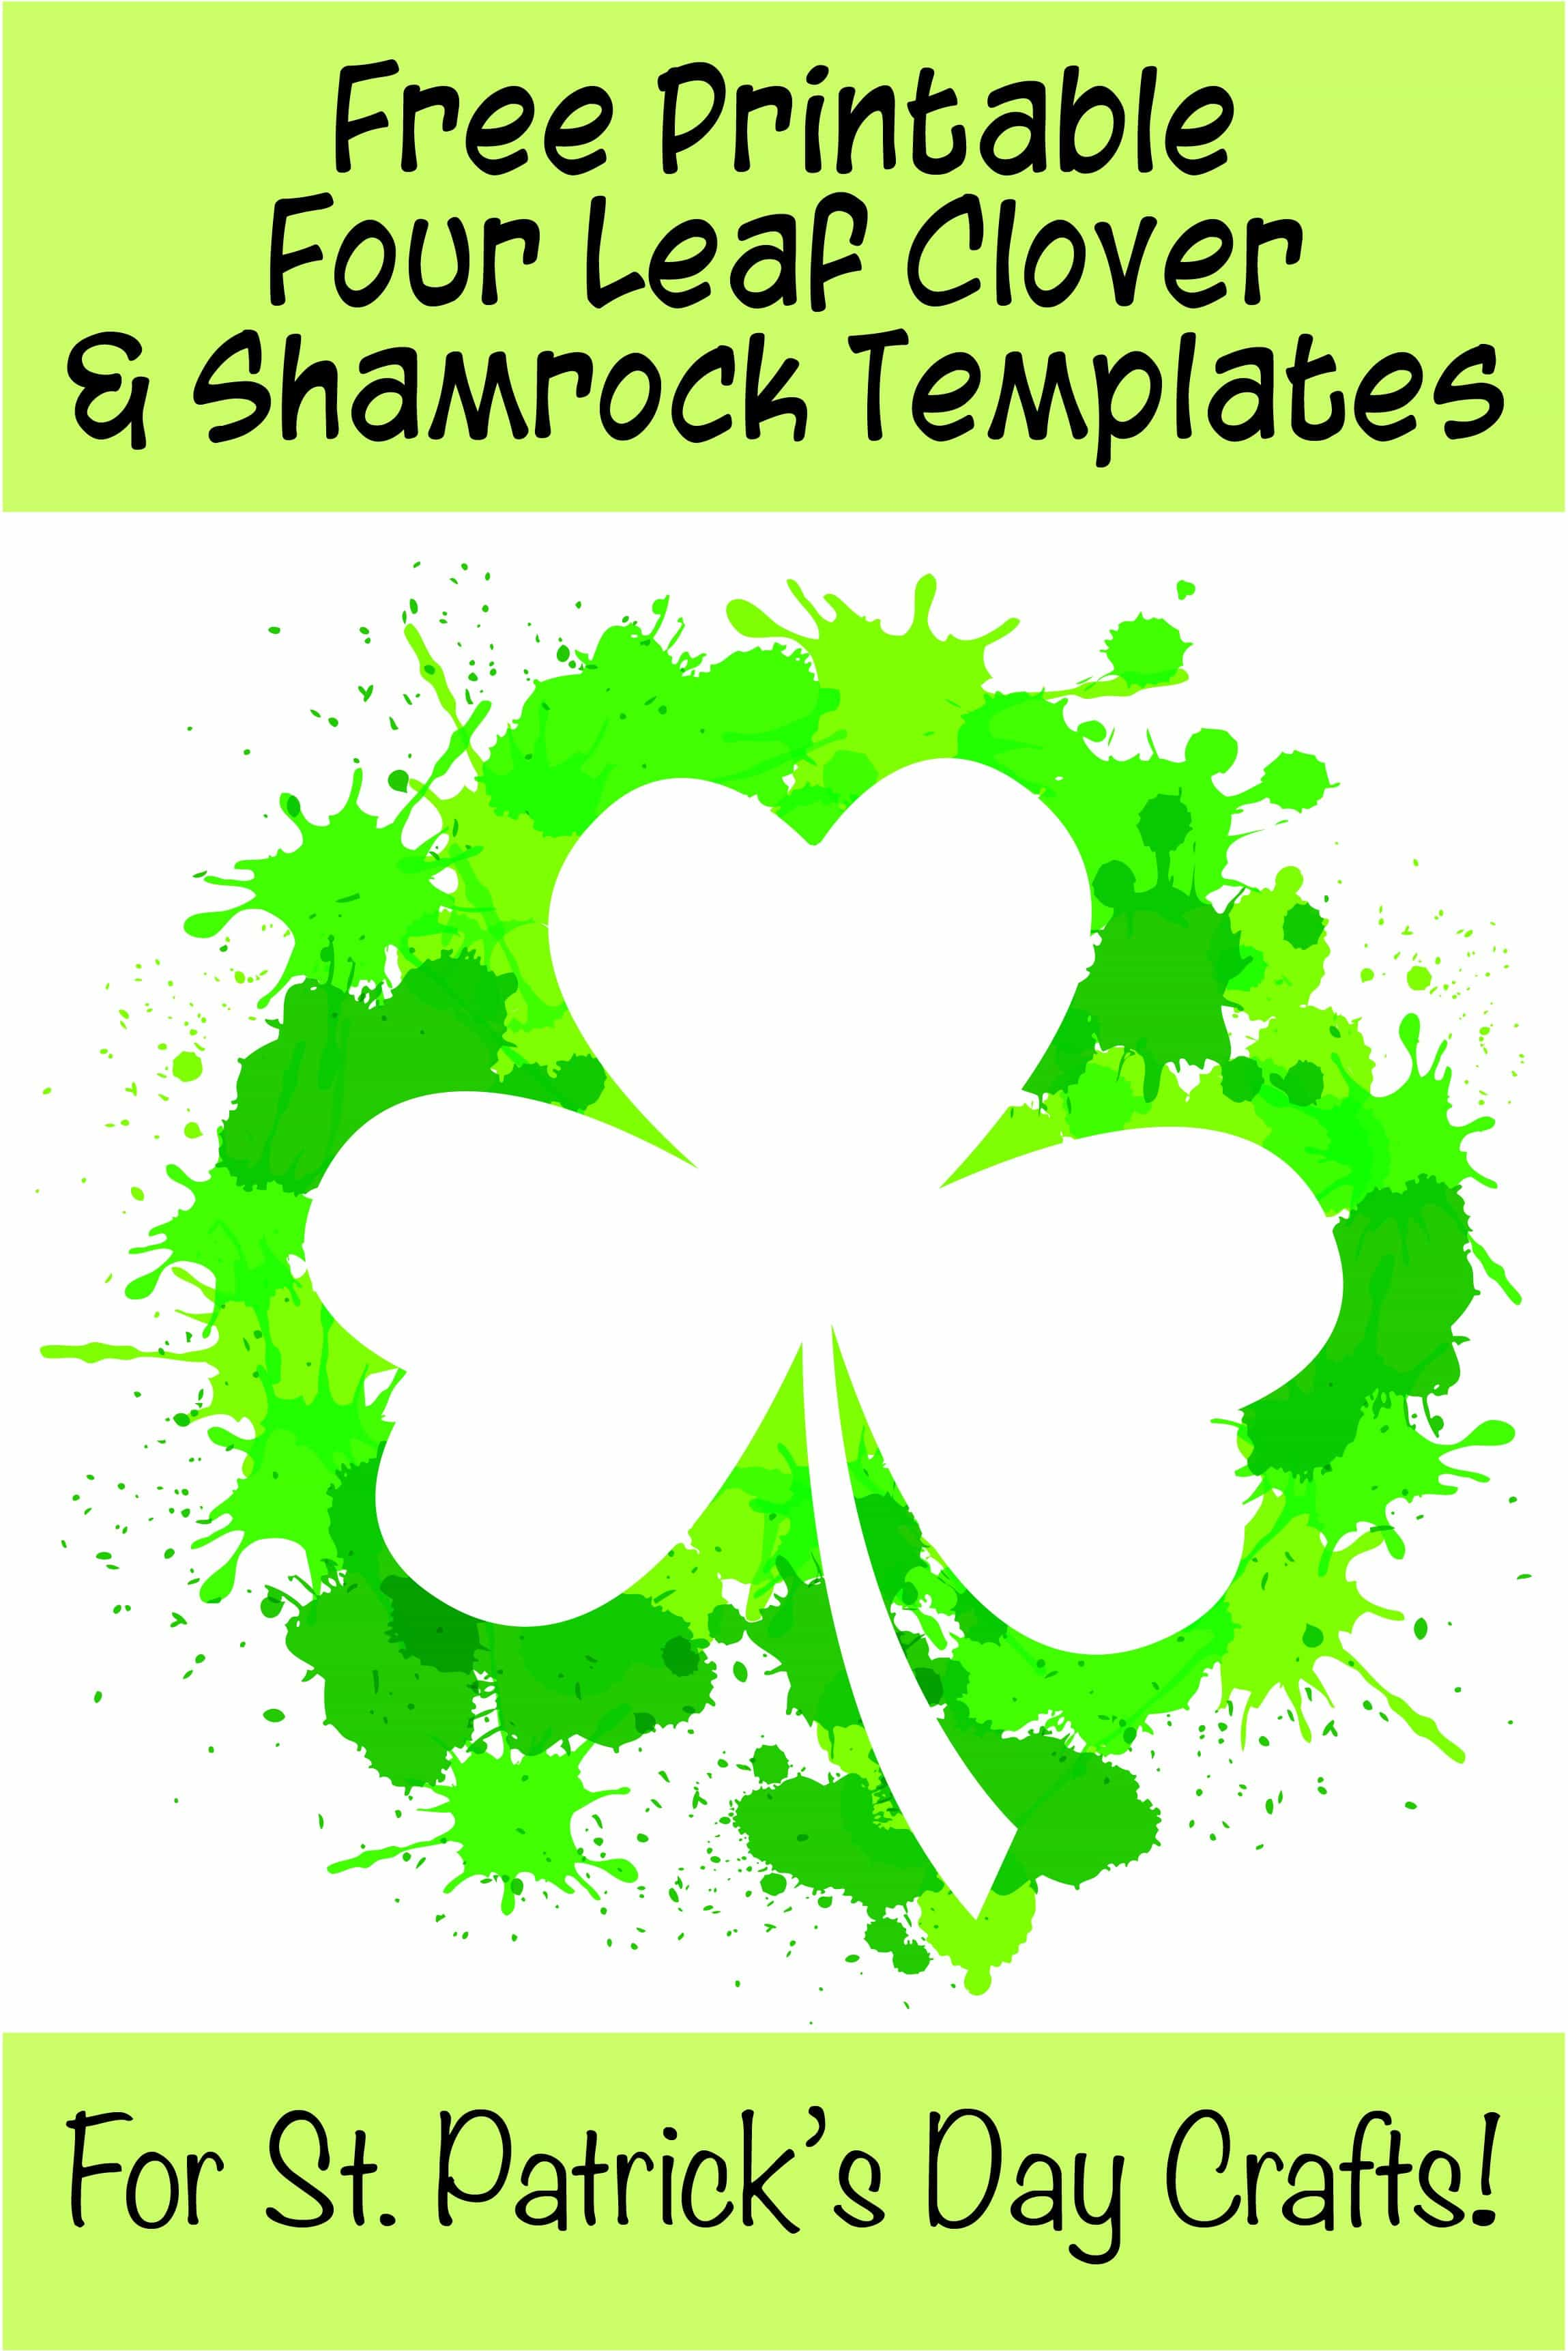 photo relating to Shamrock Template Printable Free known as 17+ Cost-free Printable 4 Leaf Clover Shamrock Templates